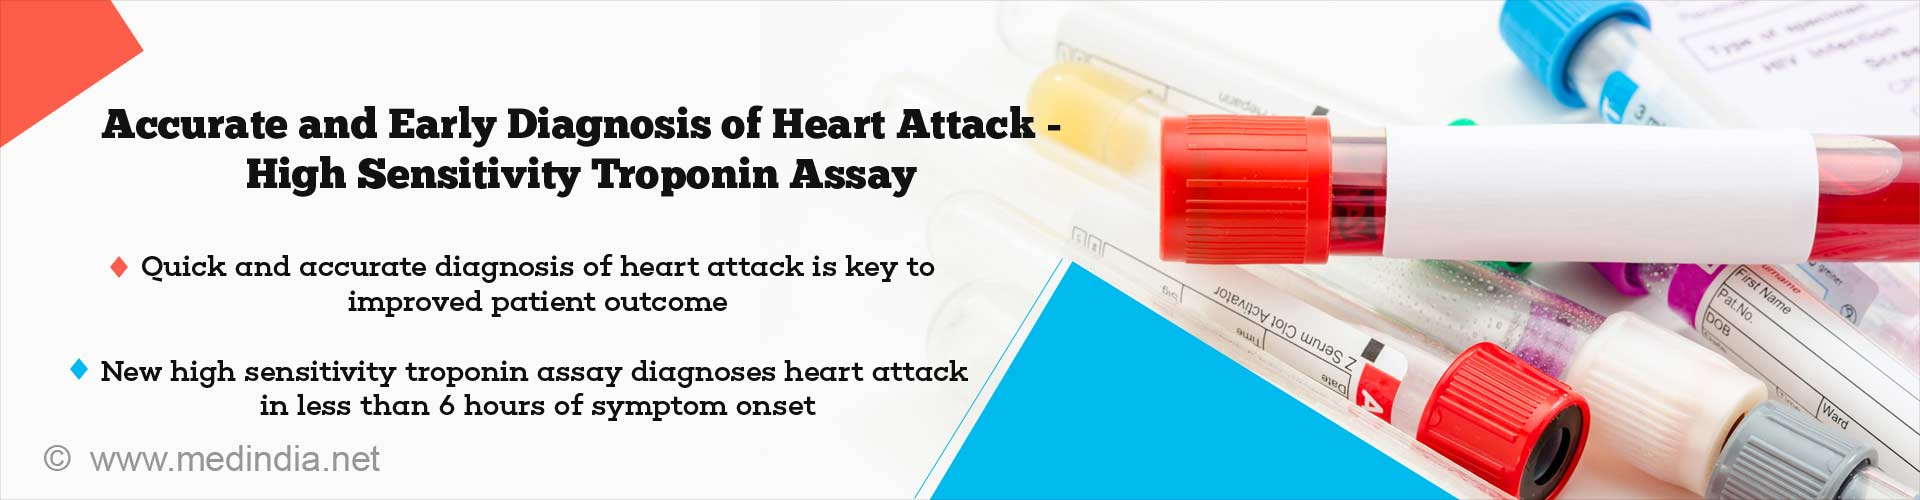 New High Sensitivity Troponin Assay - A Potential Game Changer In Heart Attack Diagnosis